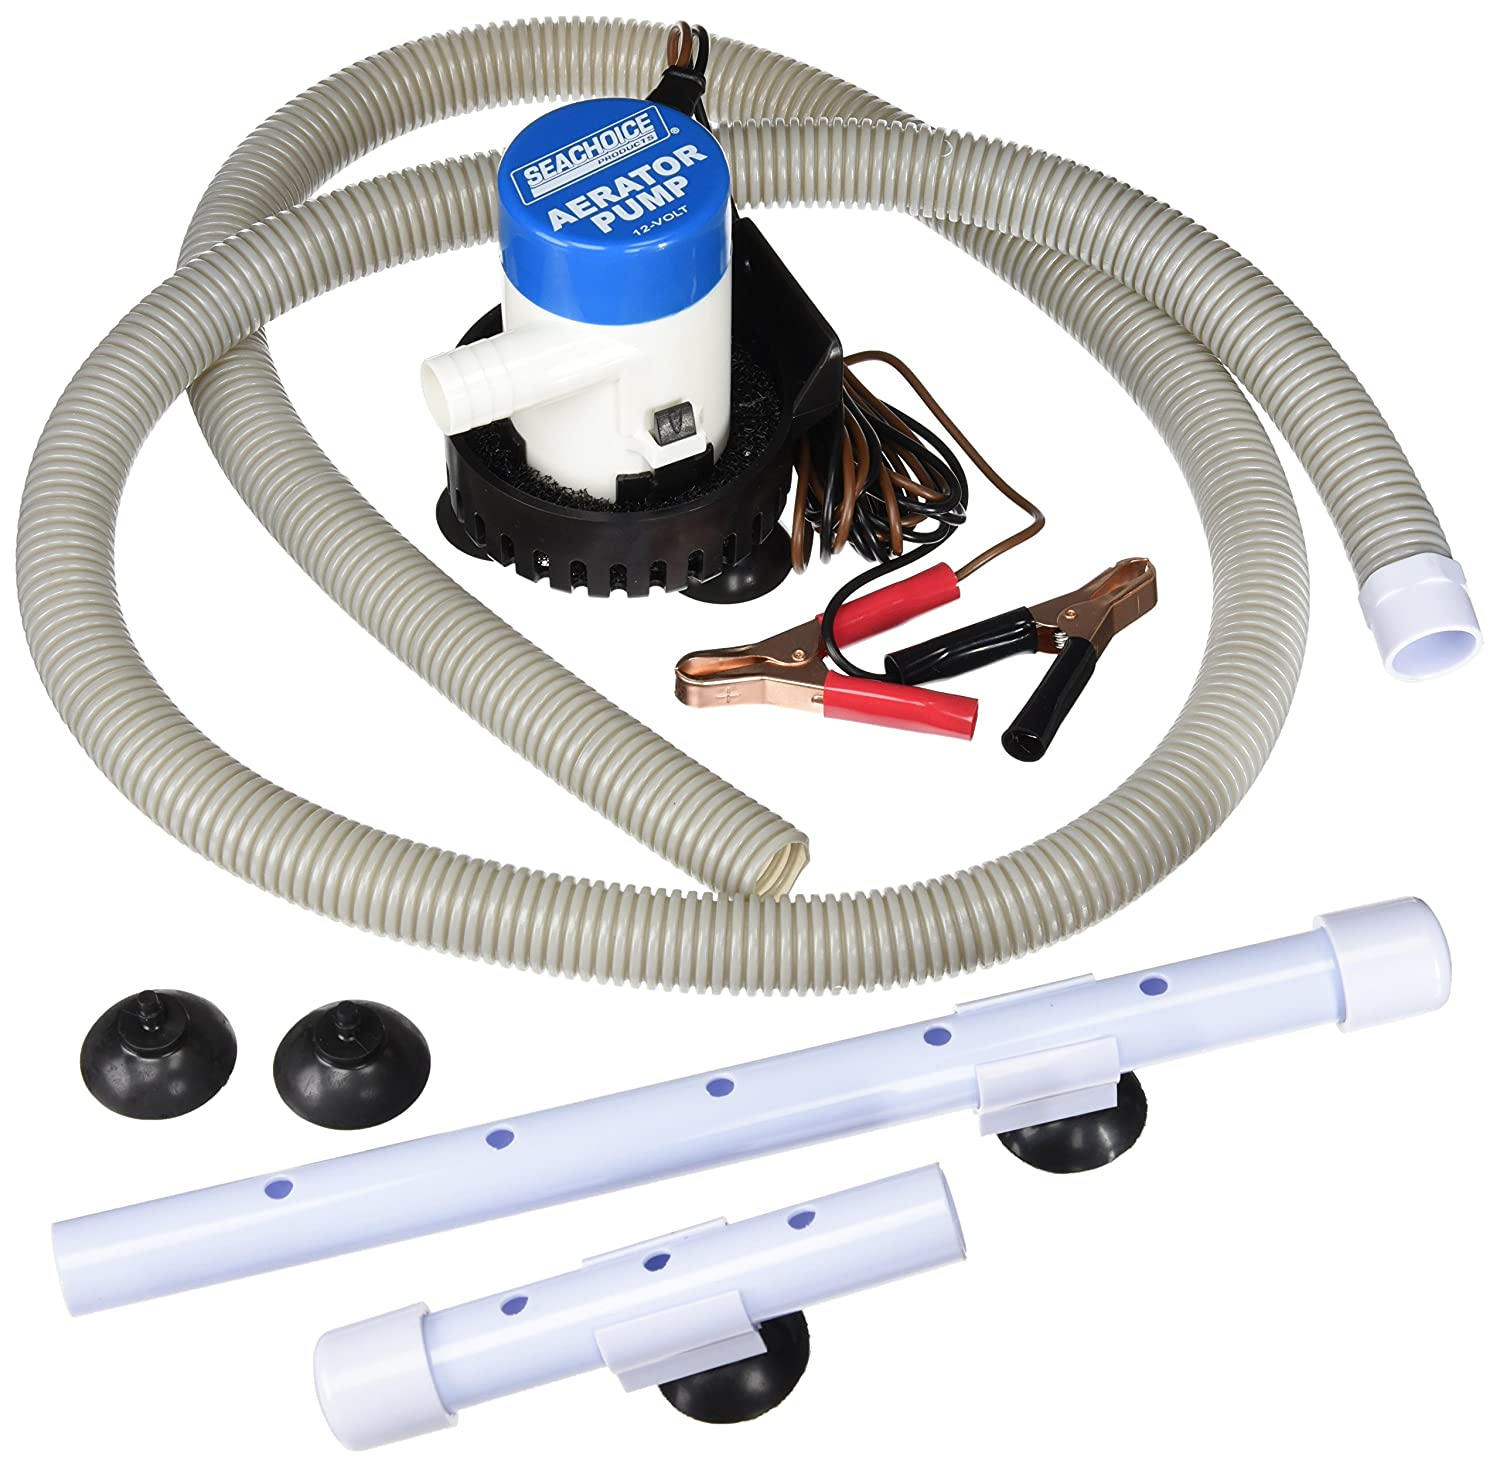 Boating Accessories NEW SEACHOICE LIVEWELL AERATOR KIT SCP 19481